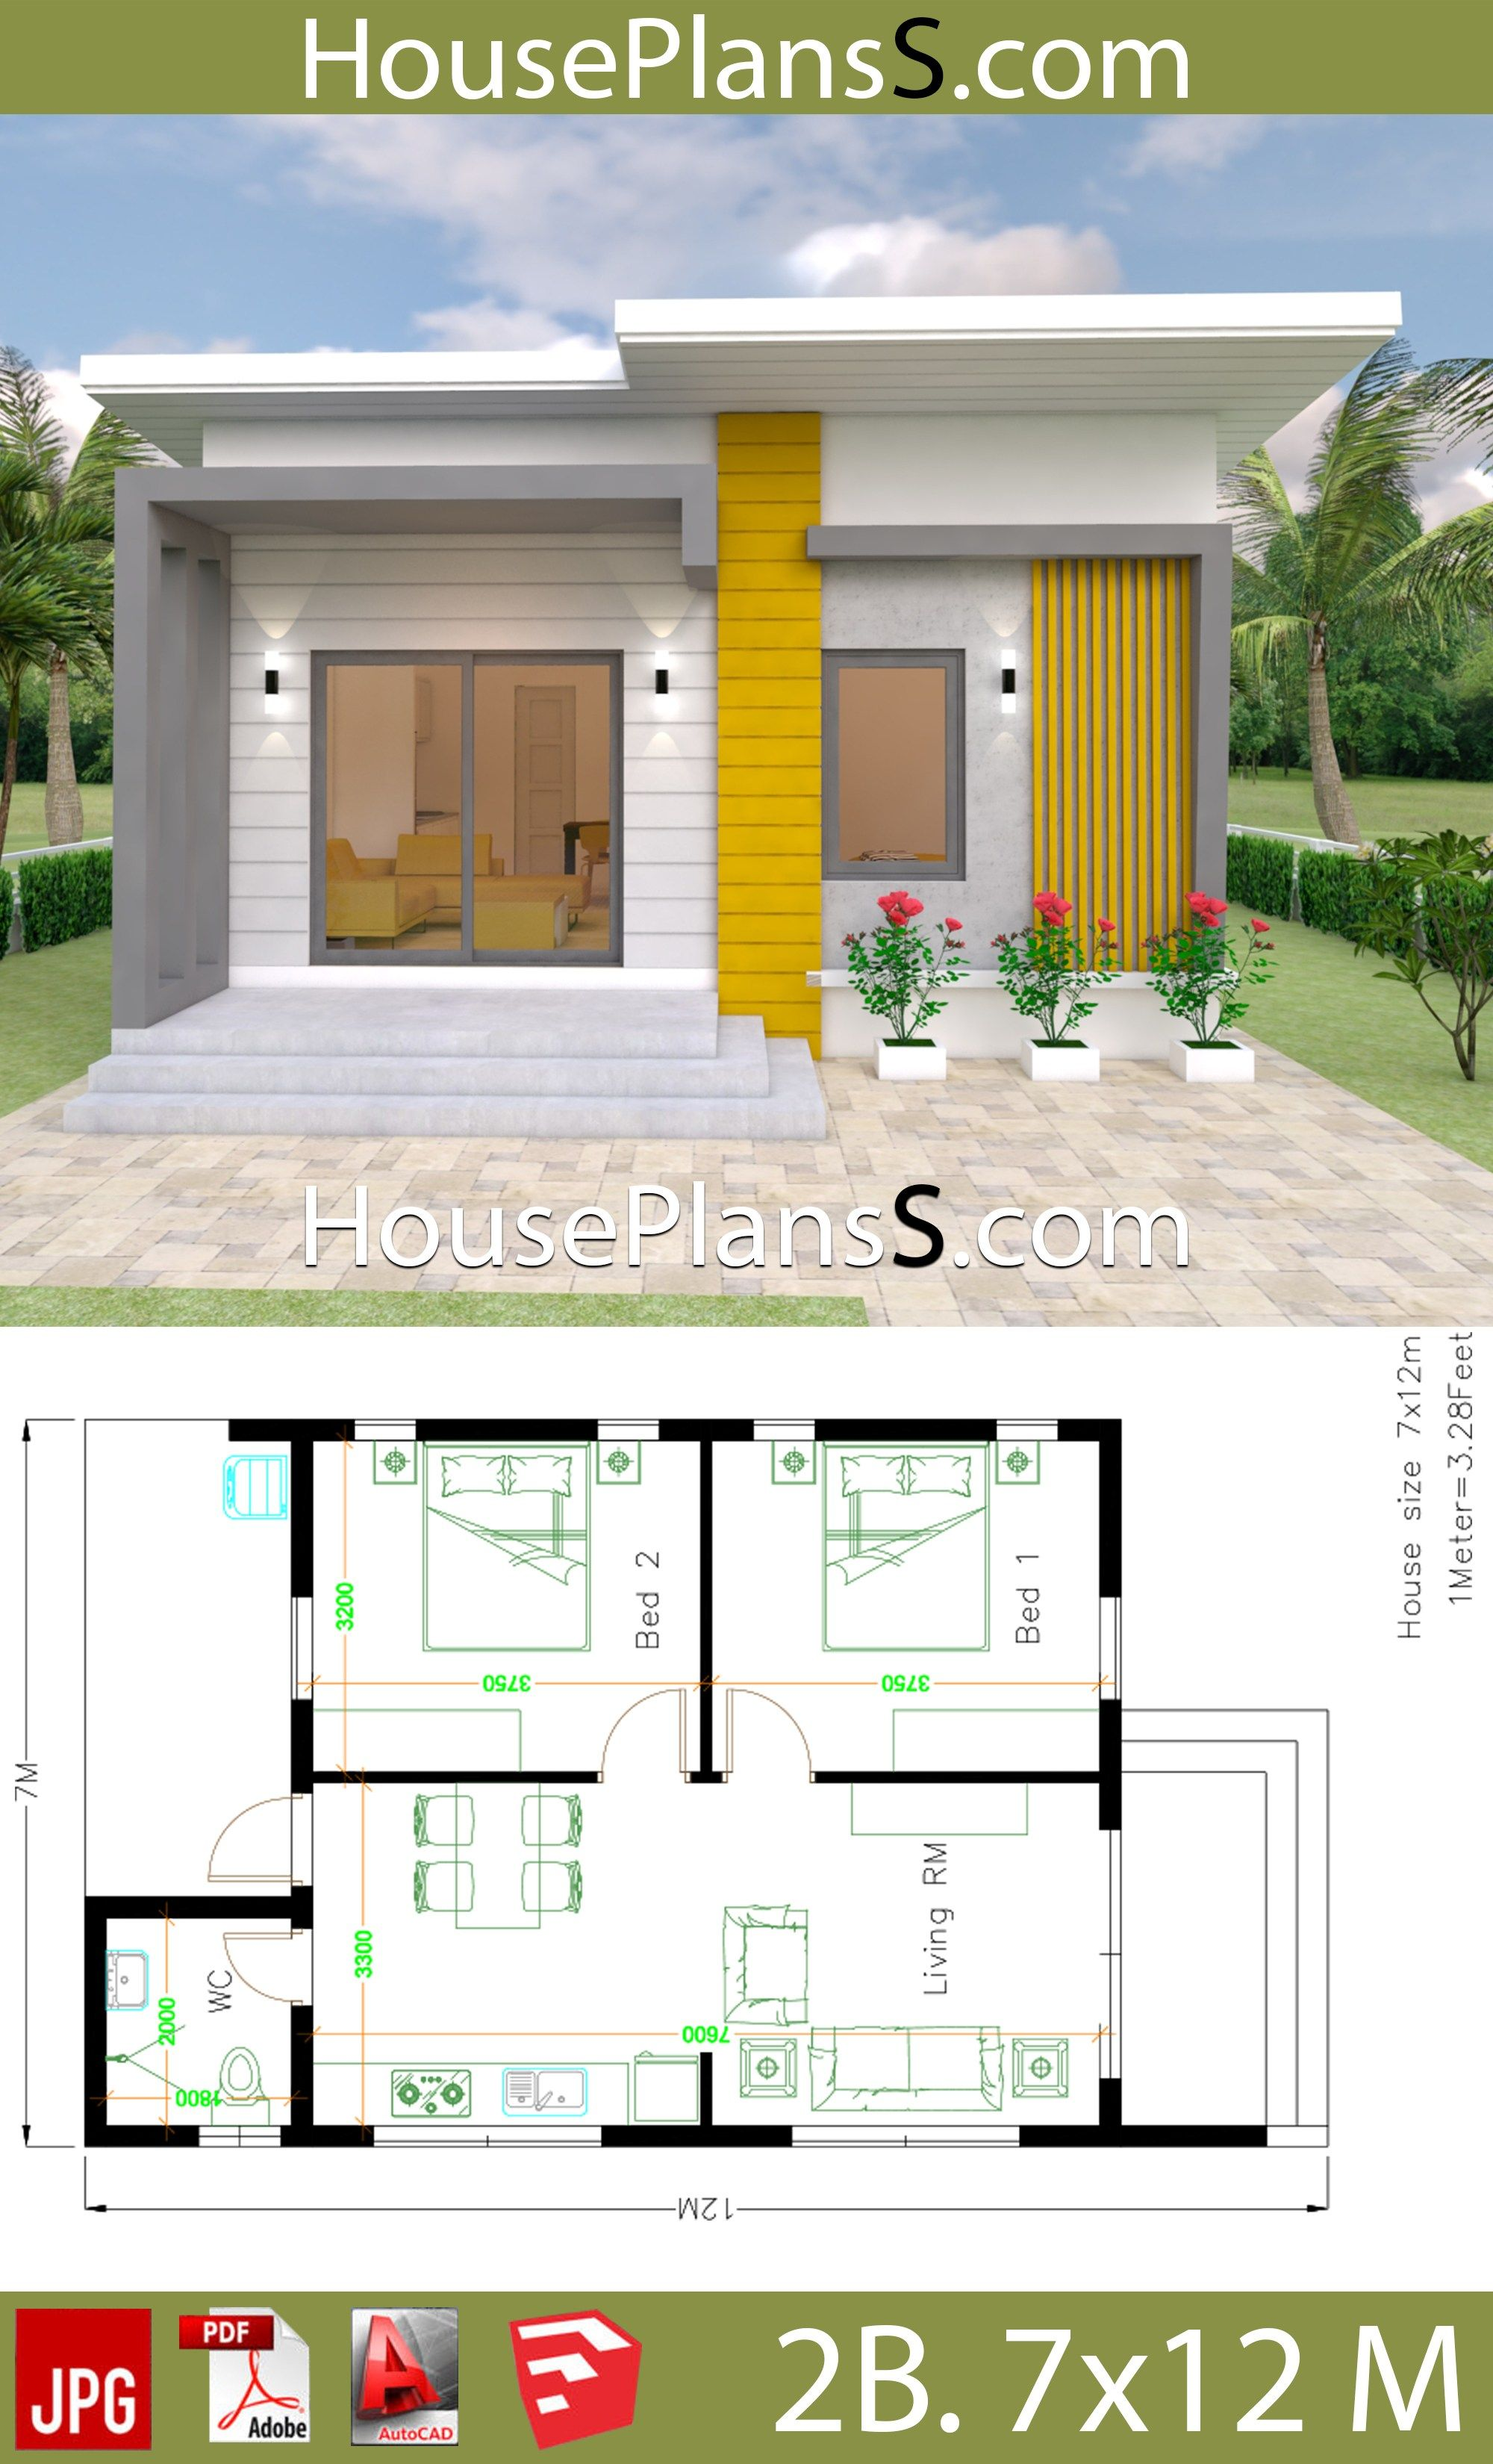 Small House Design Plans 7x12 With 2 Bedrooms Full Plansthe House Has One Story House 2 Small House Design Plans Modern Small House Design Small House Design